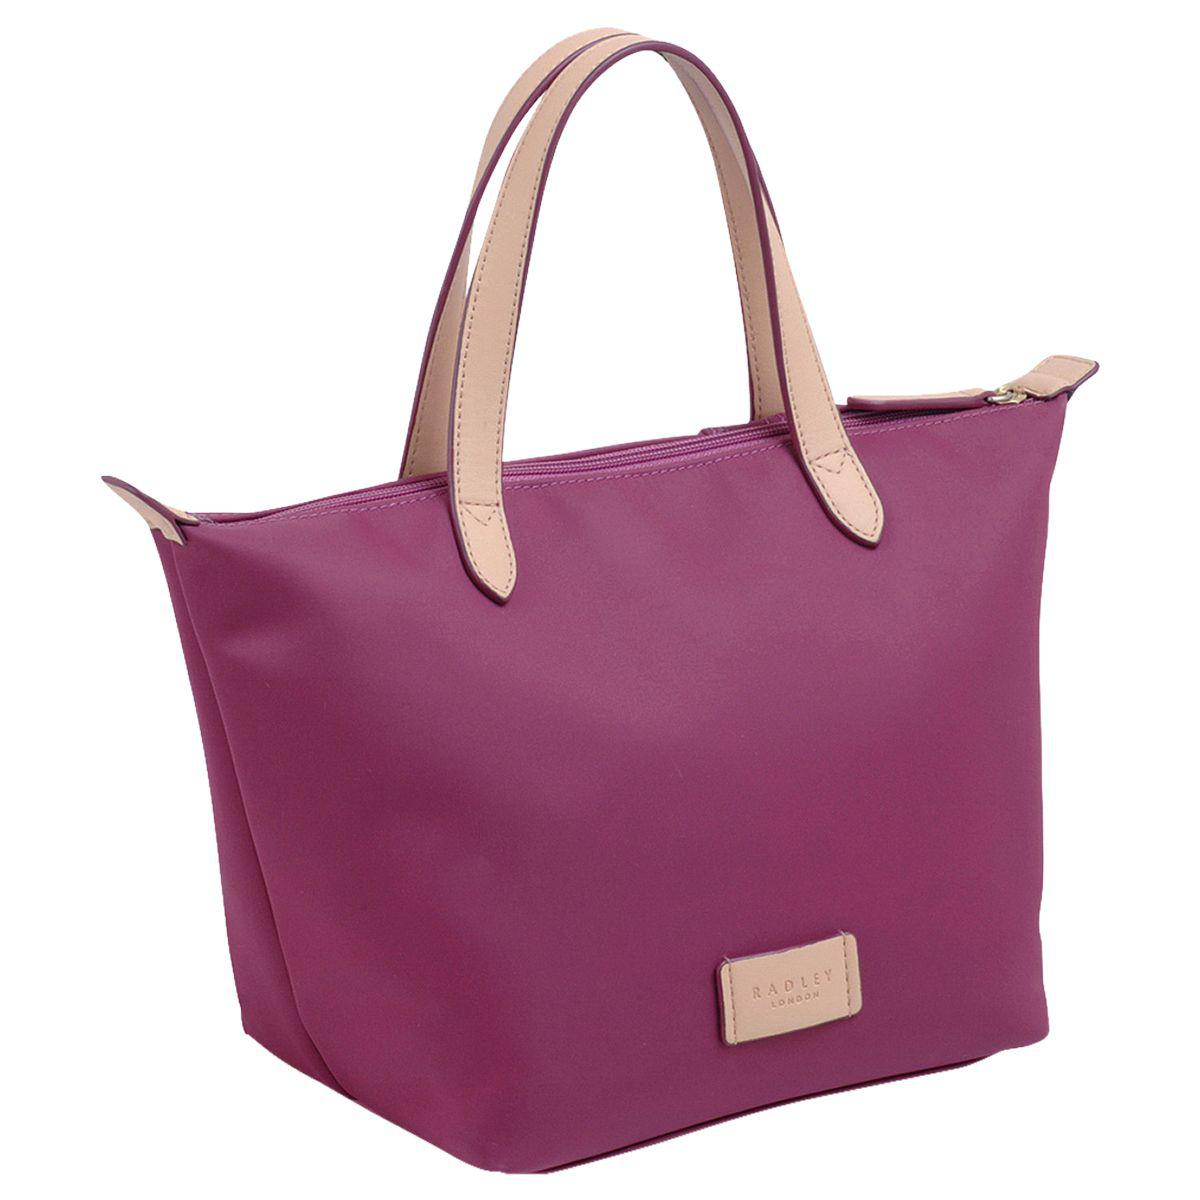 Radley Synthetic Pocket Essentials Fabric Small Crook Tote Bag in Magenta (Purple)